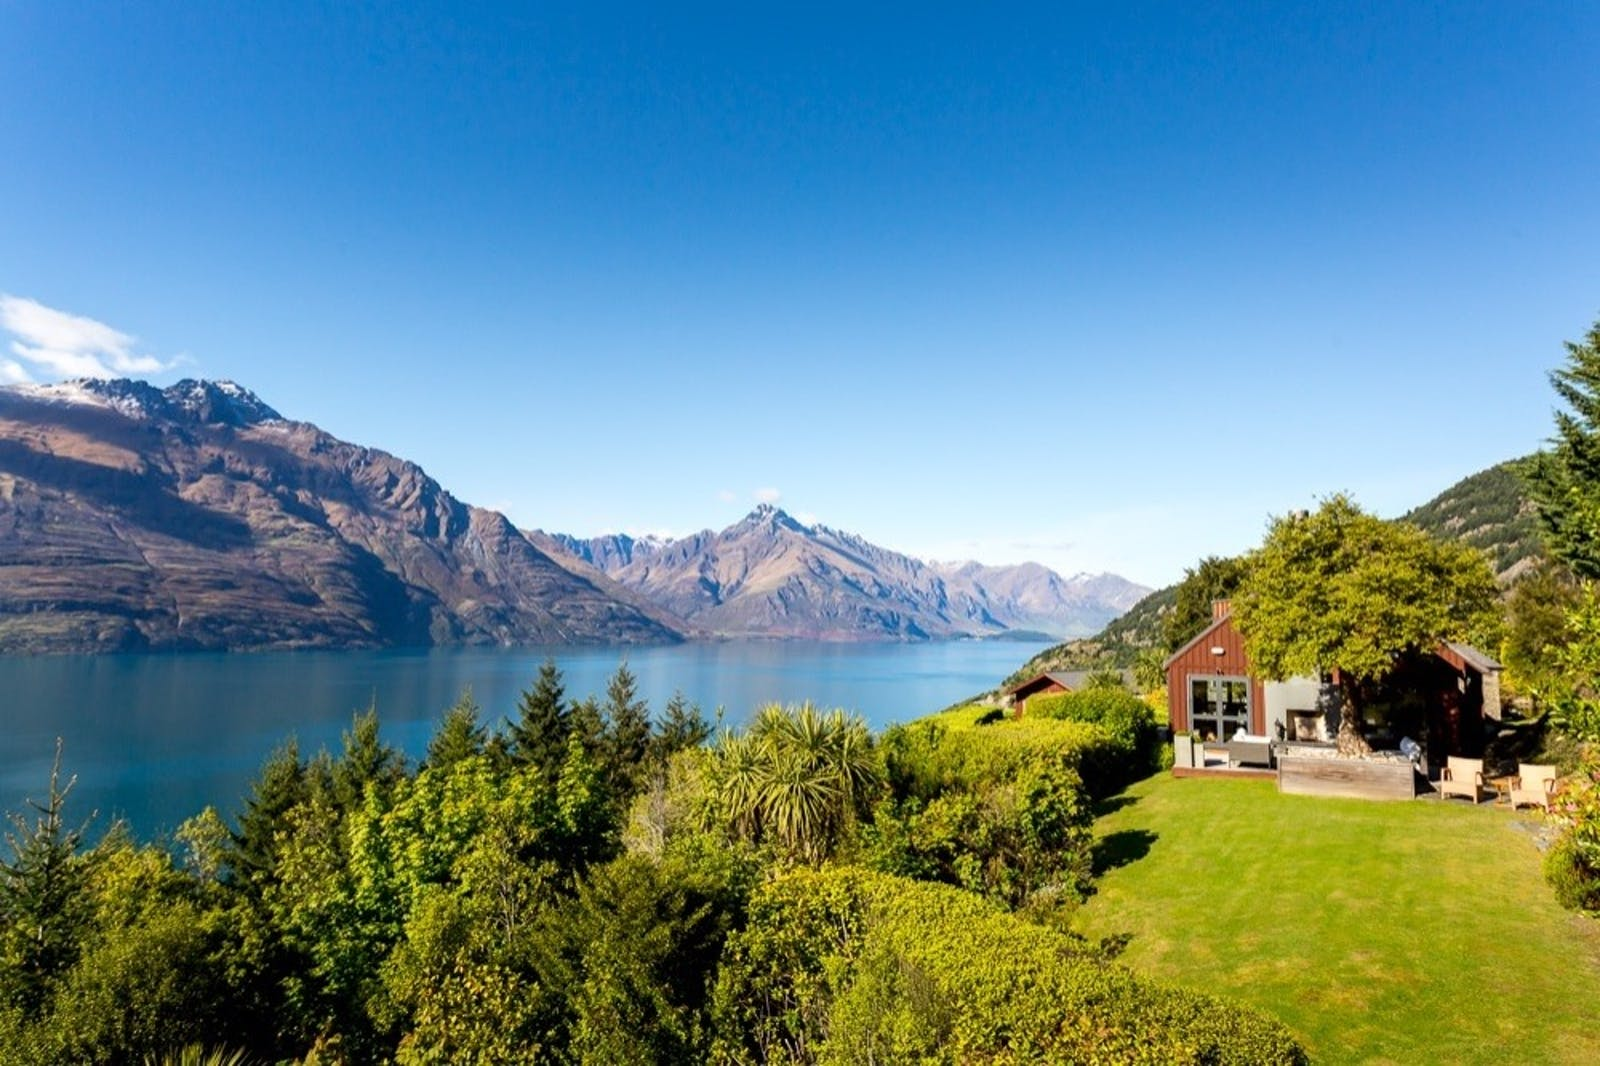 azur lodge, Queenstown, South Island, New Zealand